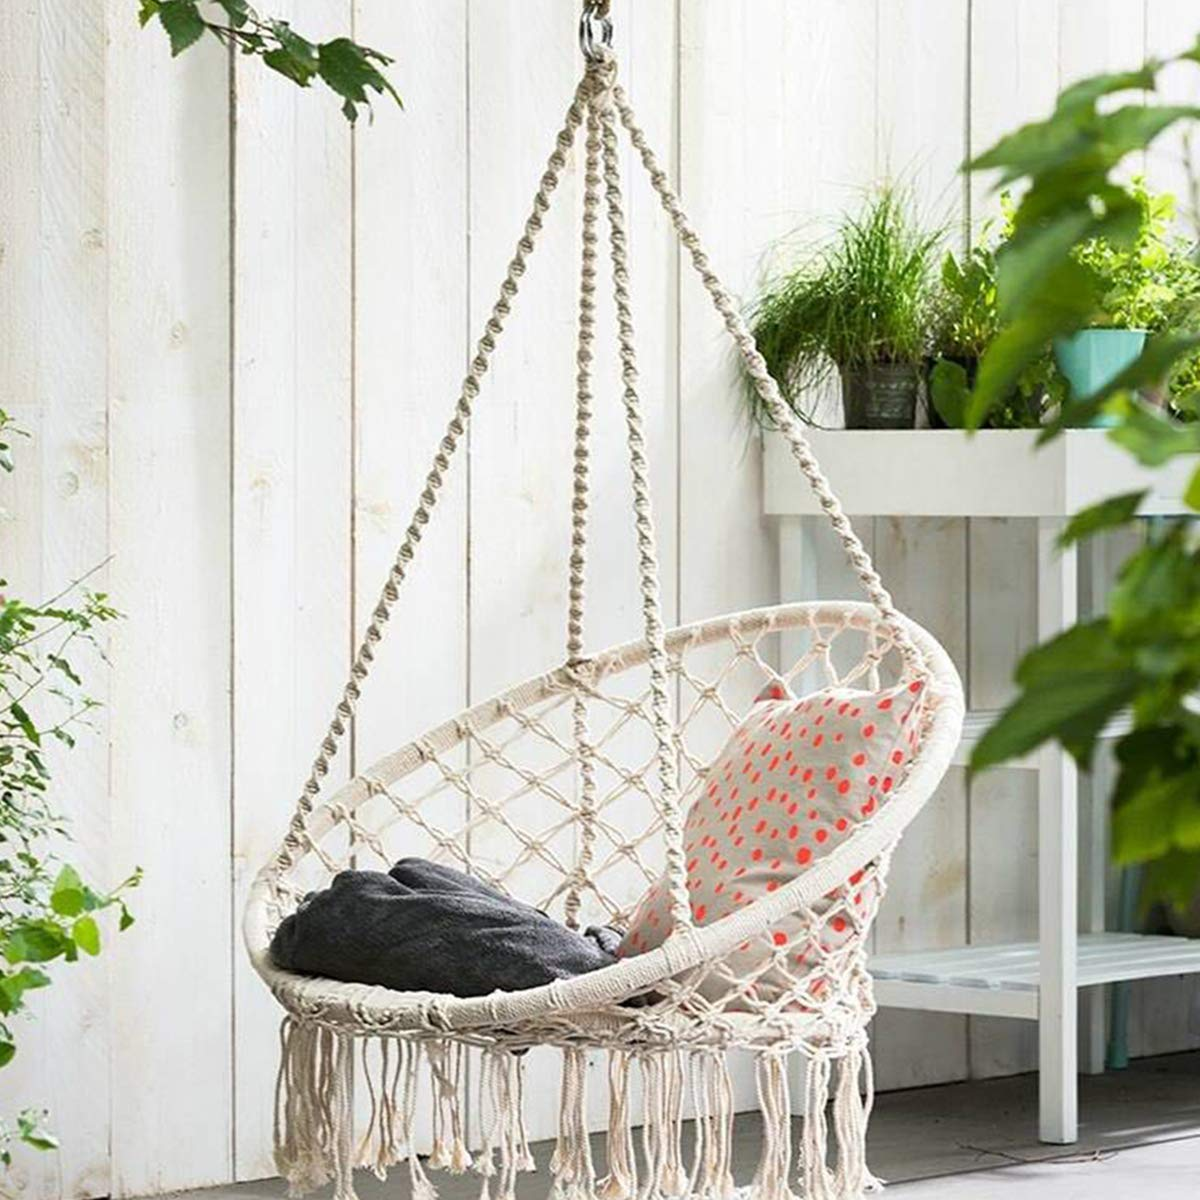 KingSo Hammock Chair Macrame Swing, Handmade Knitted Hanging Cotton Rope Chair for Indoor Outdoor Home Patio Deck Yard Garden Reading Leisure, 325 Pounds Capacity Beige